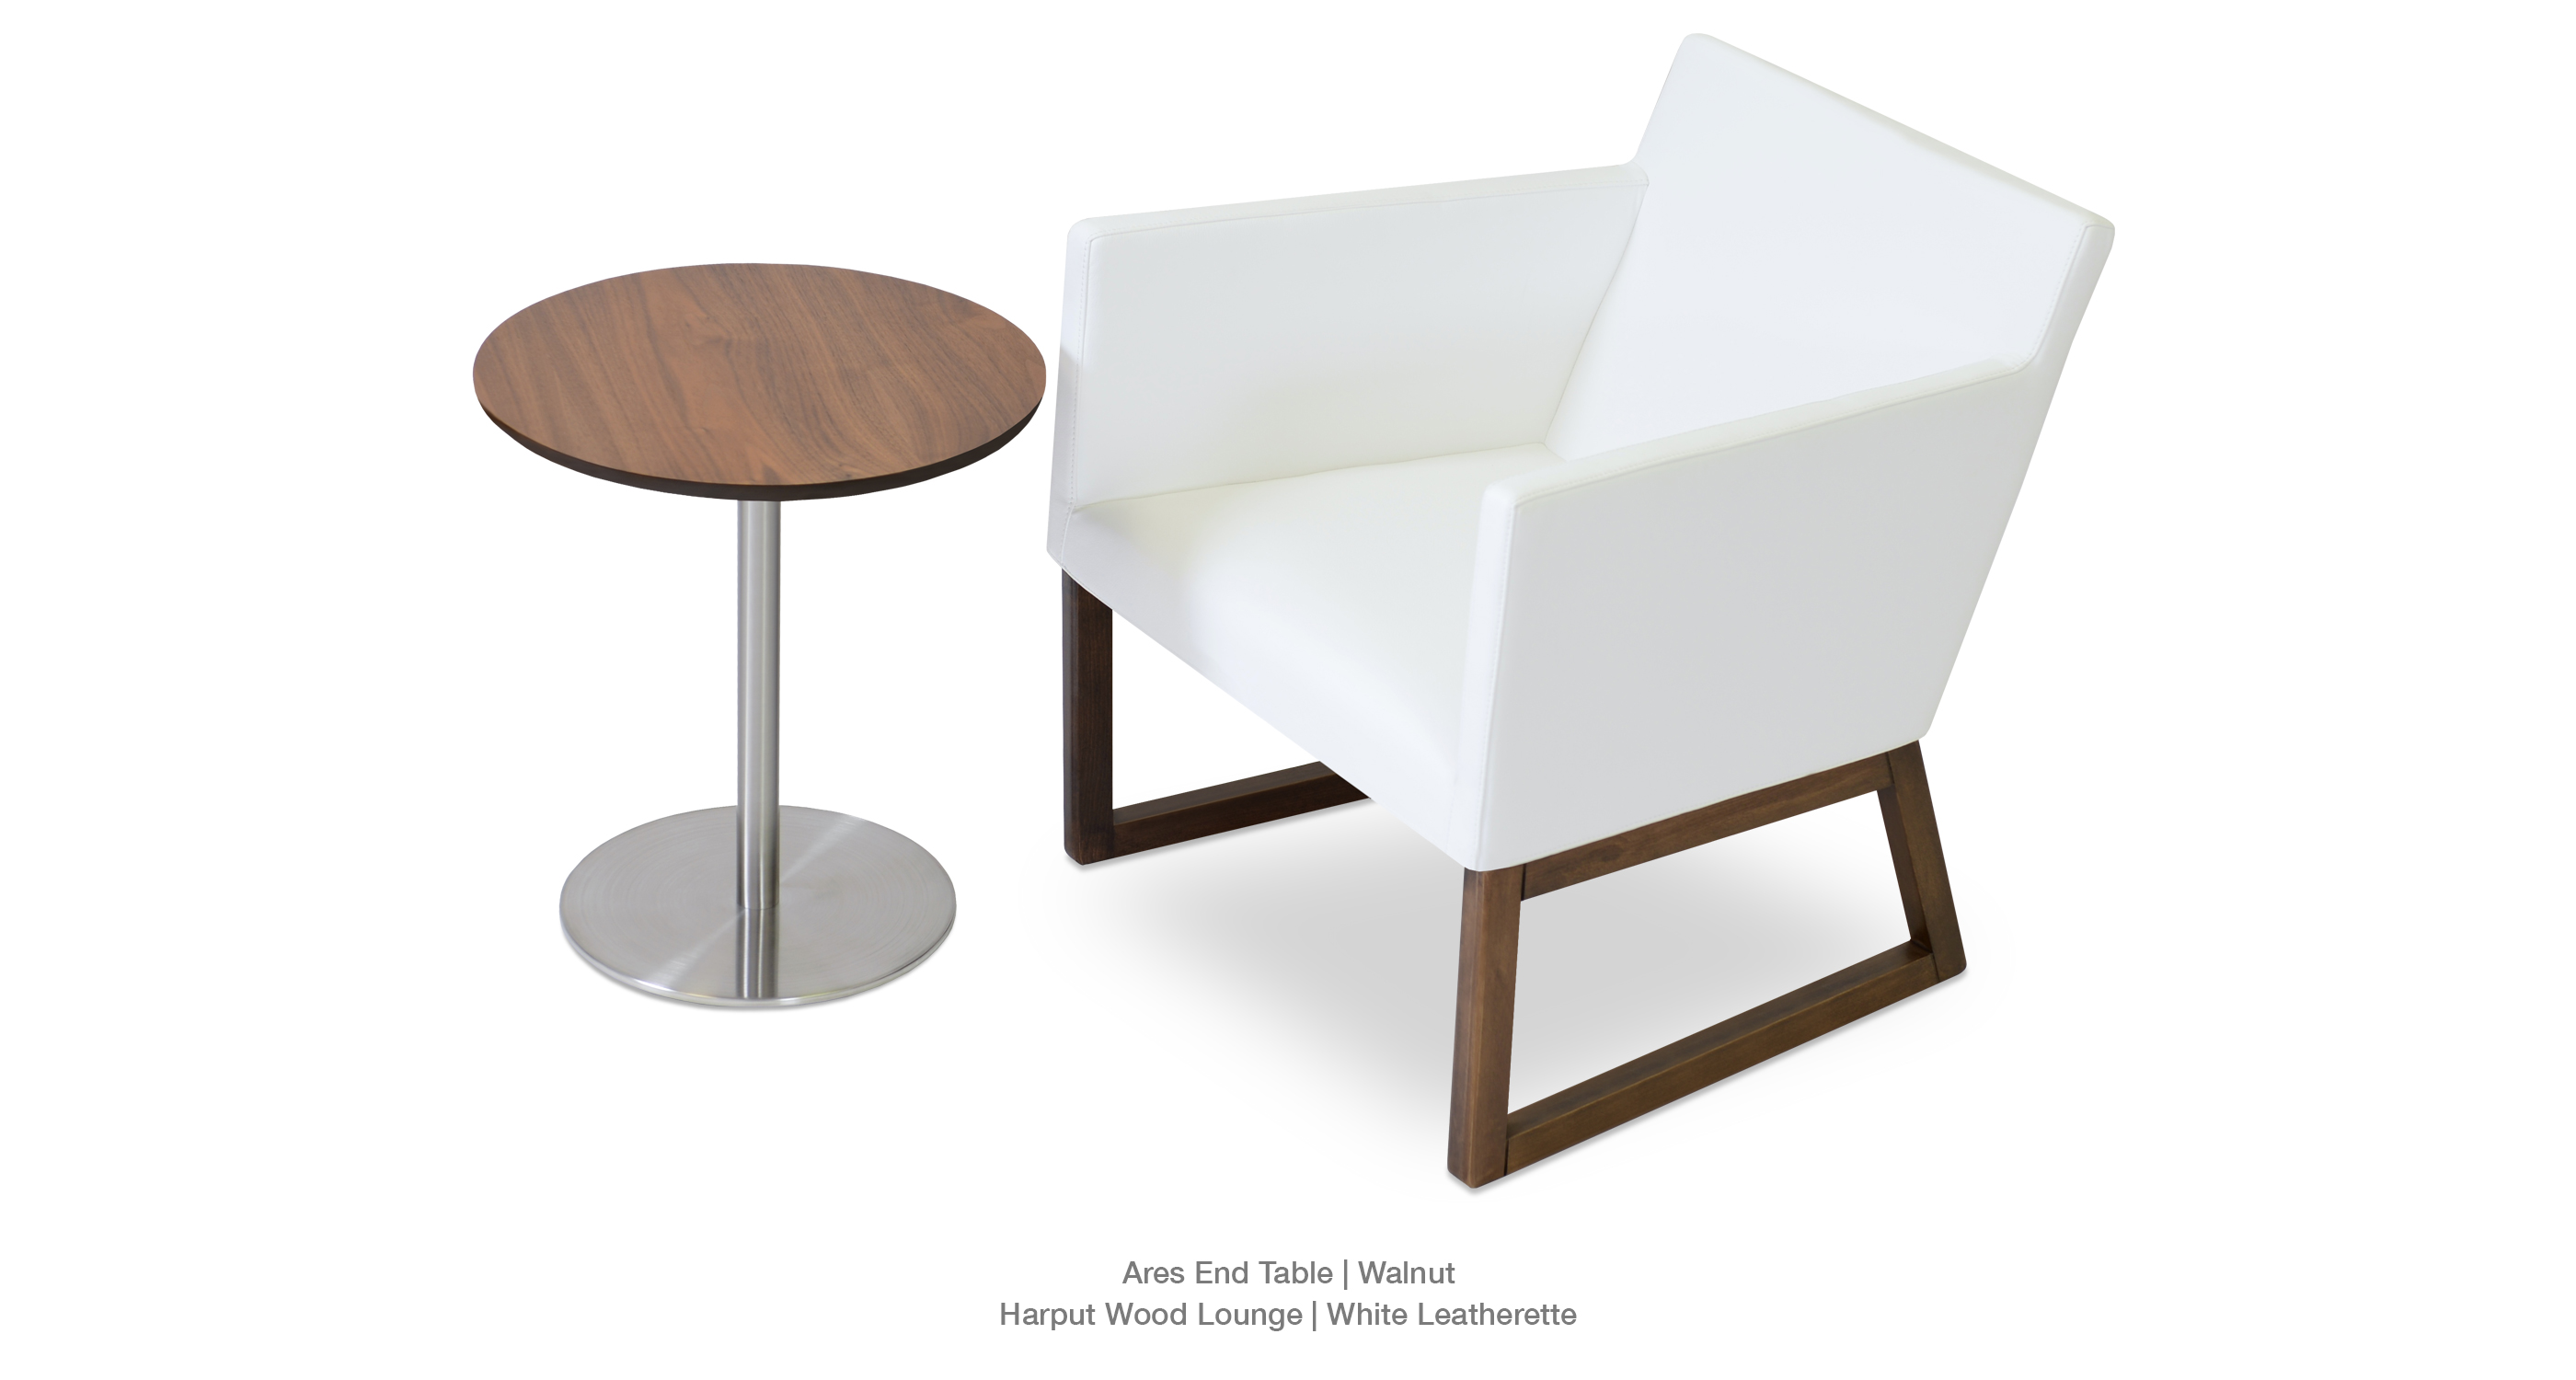 Harput Lounge Wood Ares End Table